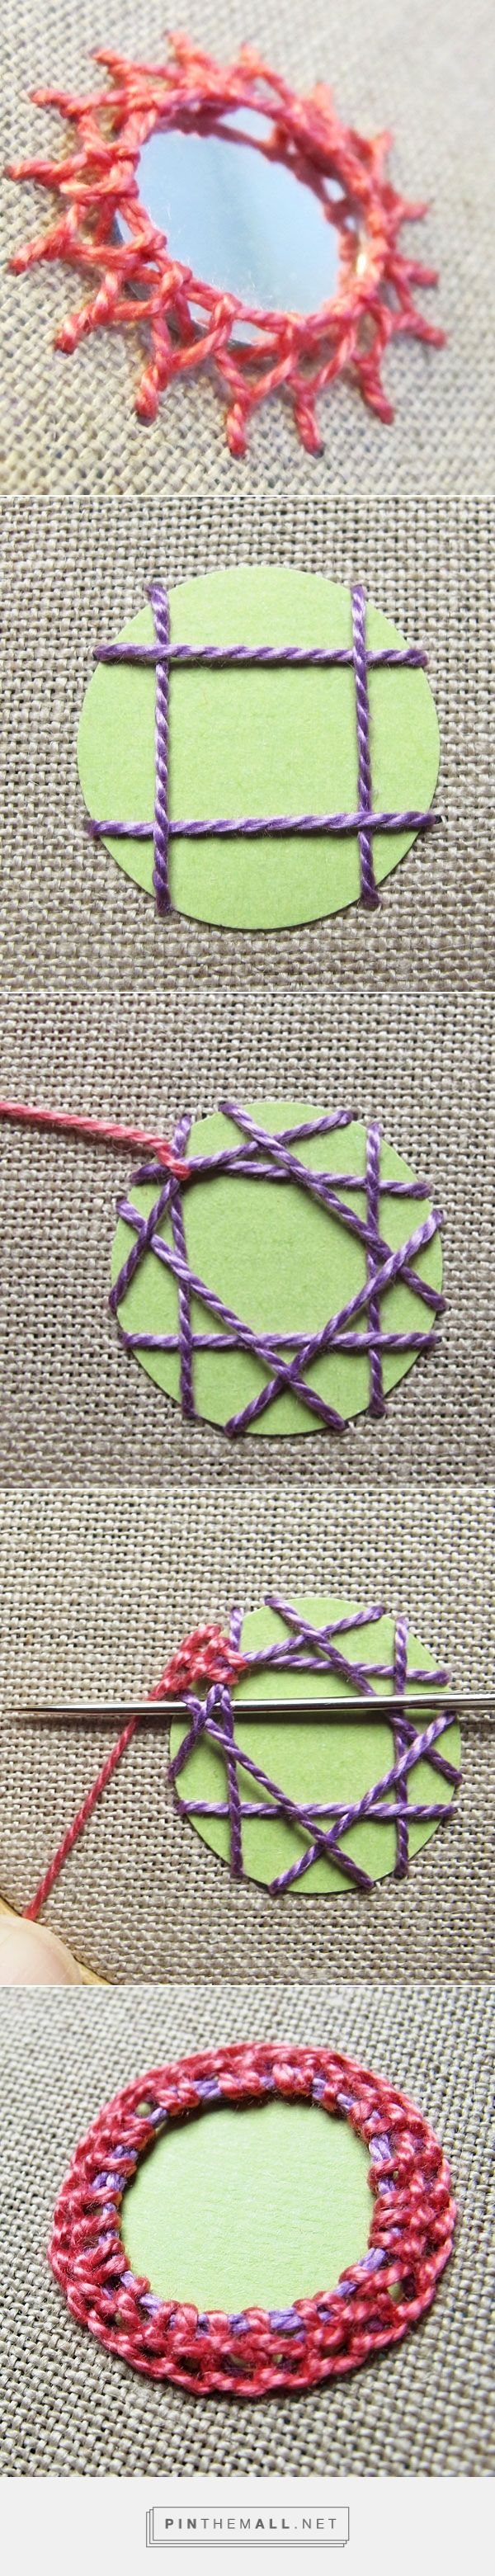 "#Embroidery_Tutorial -- ""Add Mirrors to Embroidery or Knitted/Crocheted Garments With Stunning Shisha Stitches. Full photo and text tutorial at Craftsy."" Enjoy from #KnittingGuru"